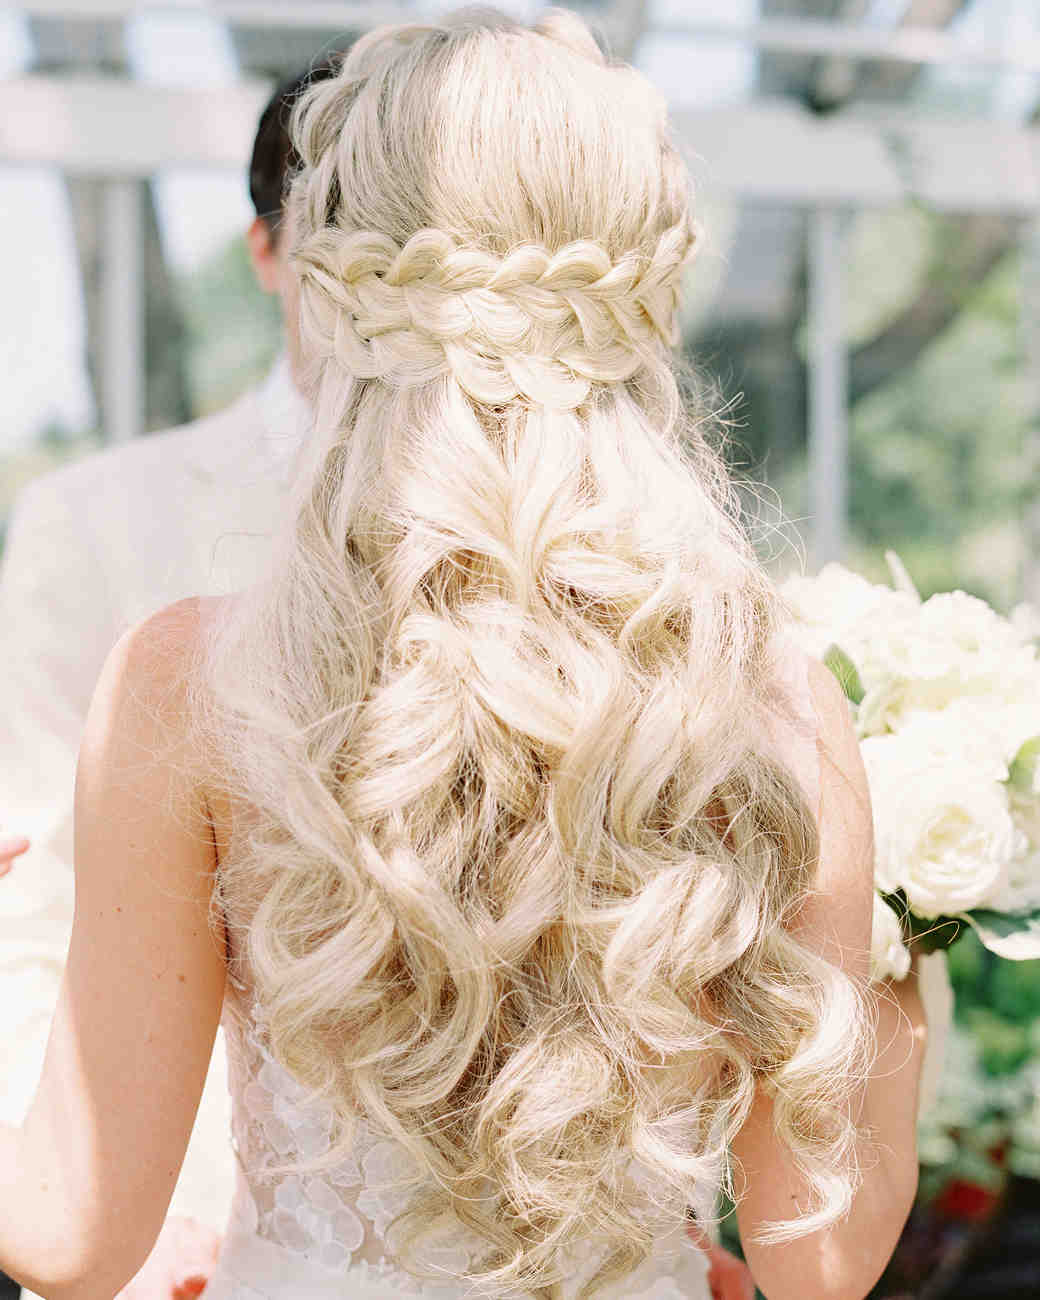 Wedding Hairstyles For Medium Thin Hair: 28 Half-Up, Half-Down Wedding Hairstyles We Love